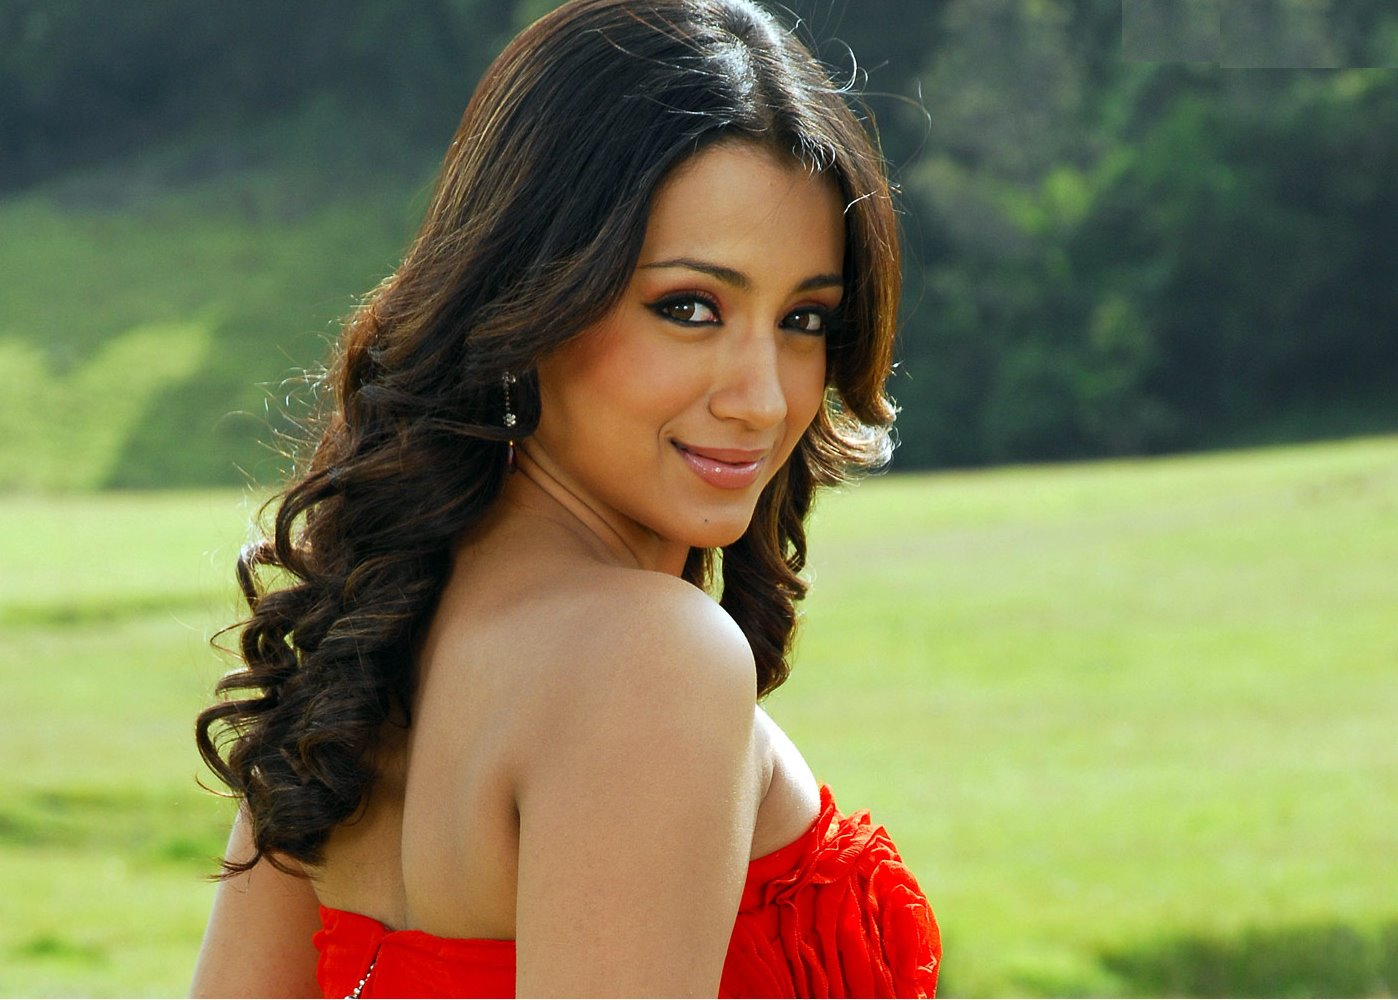 Trisha Sexy Photos 63